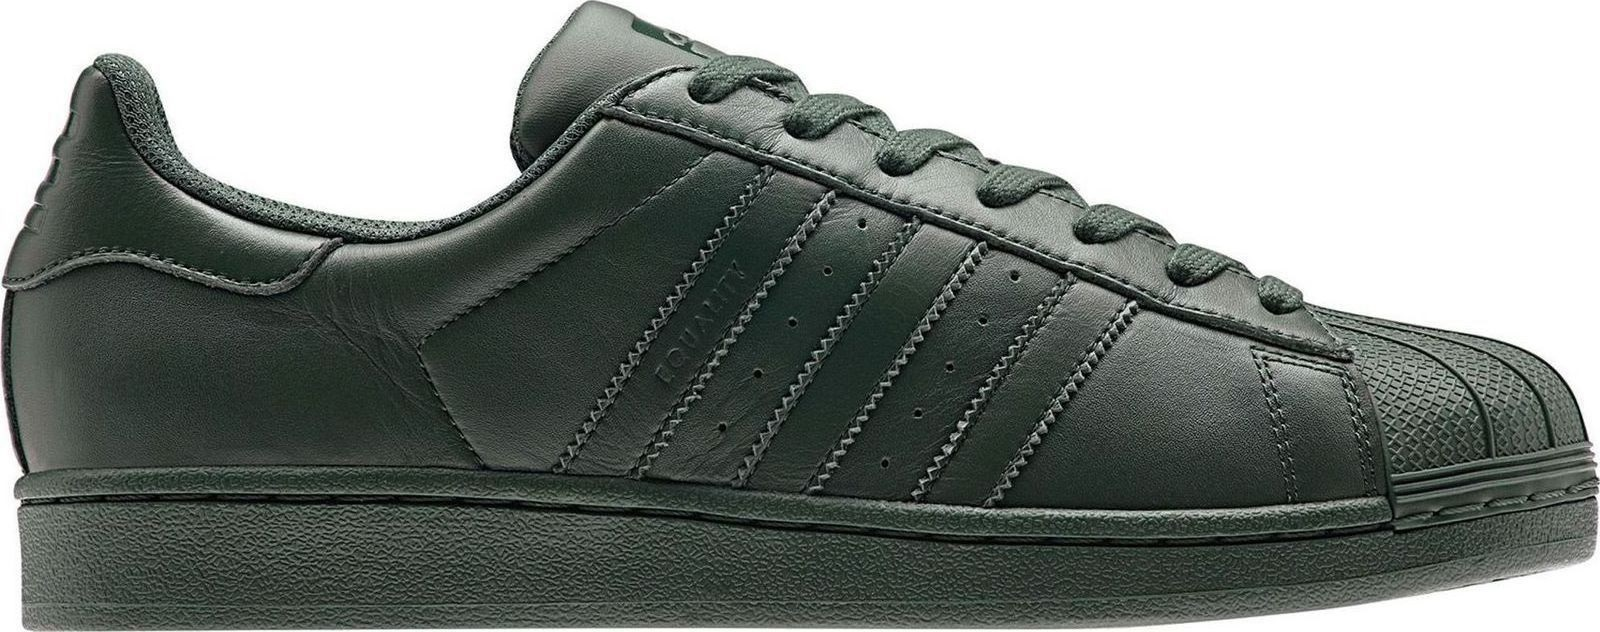 Superstar Adidas Colors Black